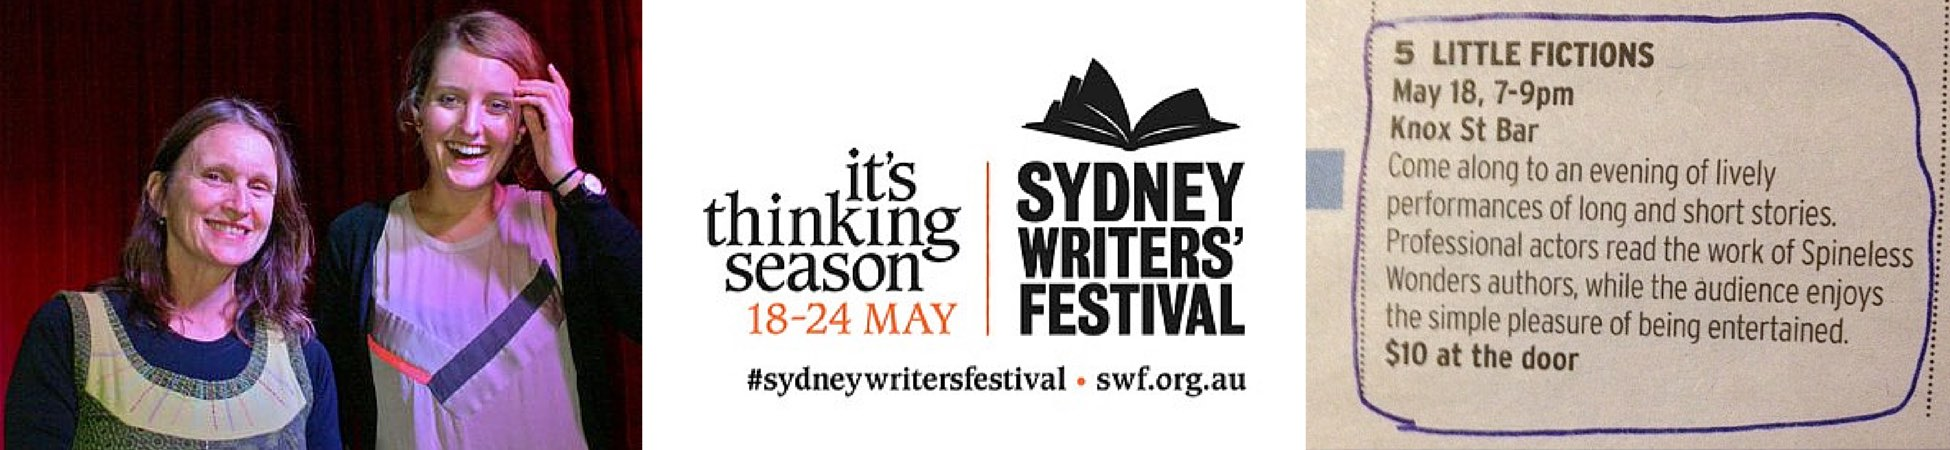 Claire Aman, Eleni Schumacher and Sydney Writers' Festival banner